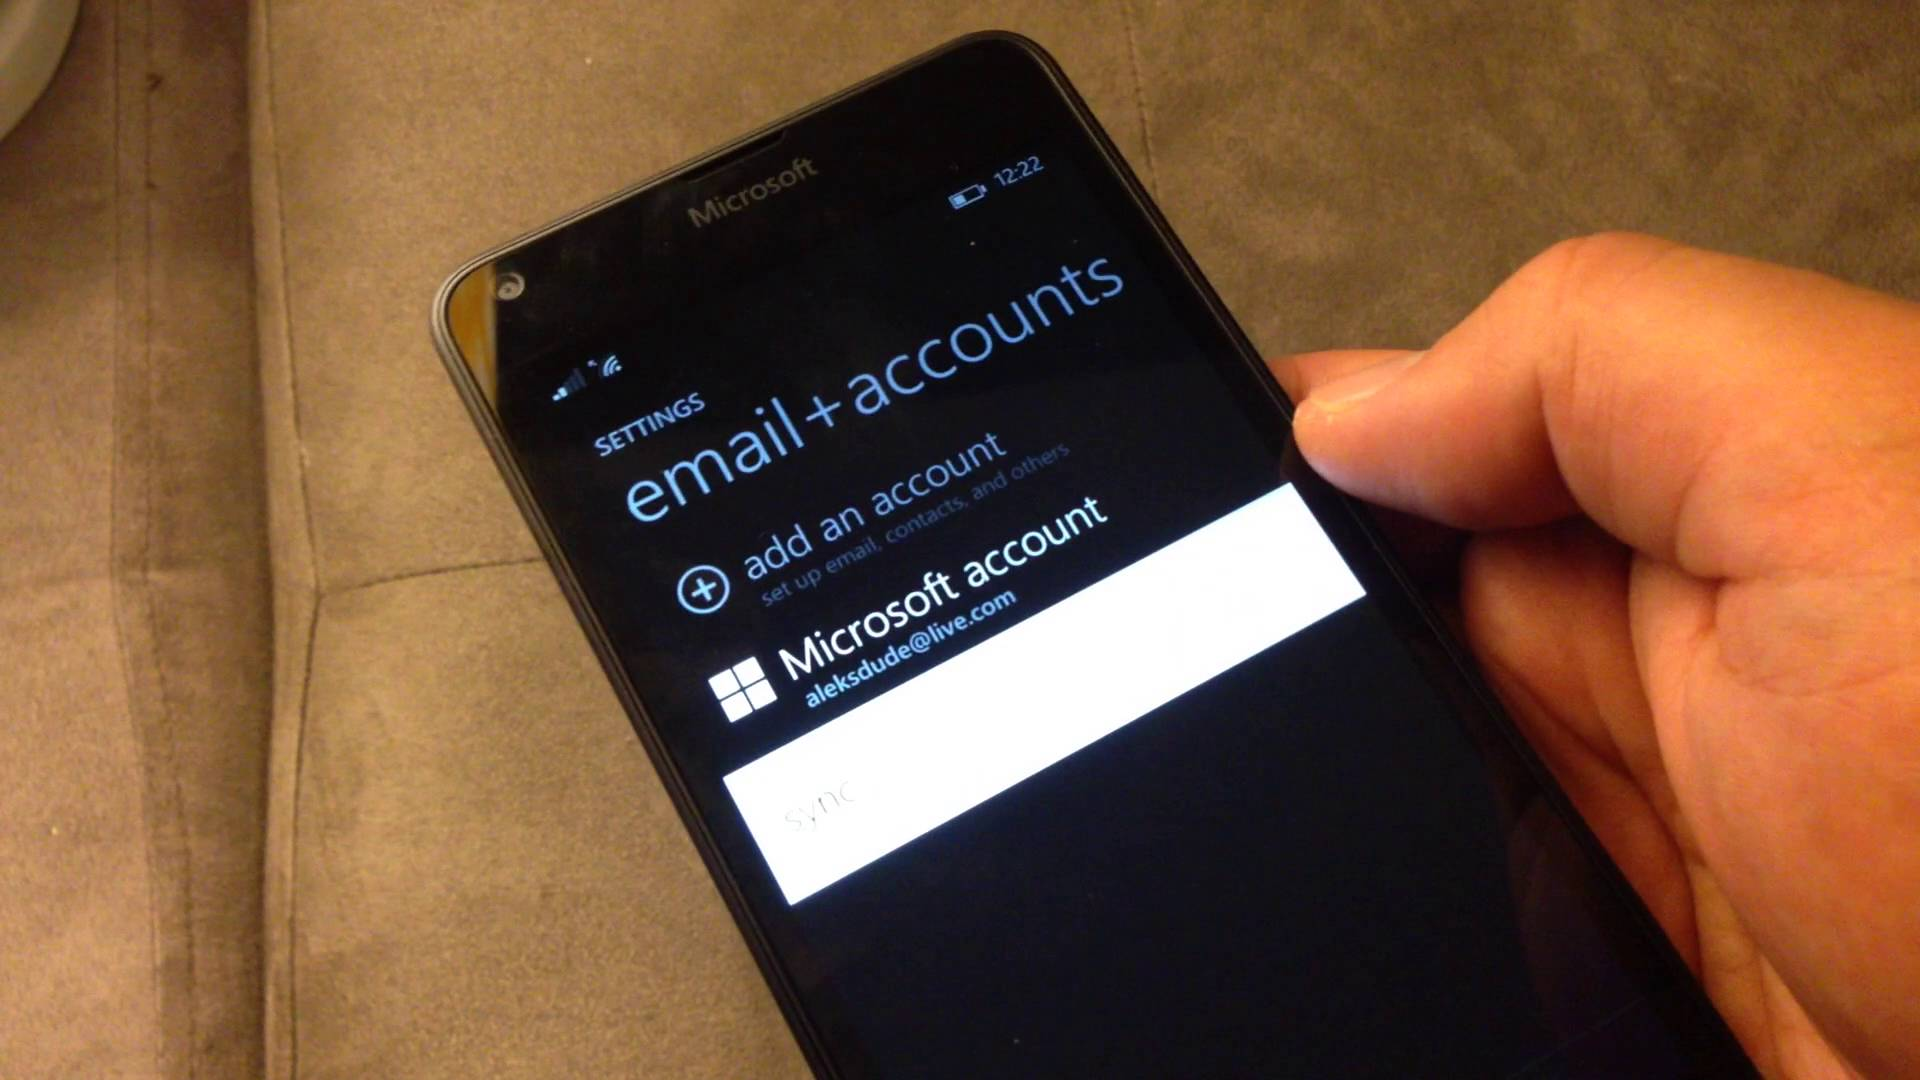 How to create a Nokia account